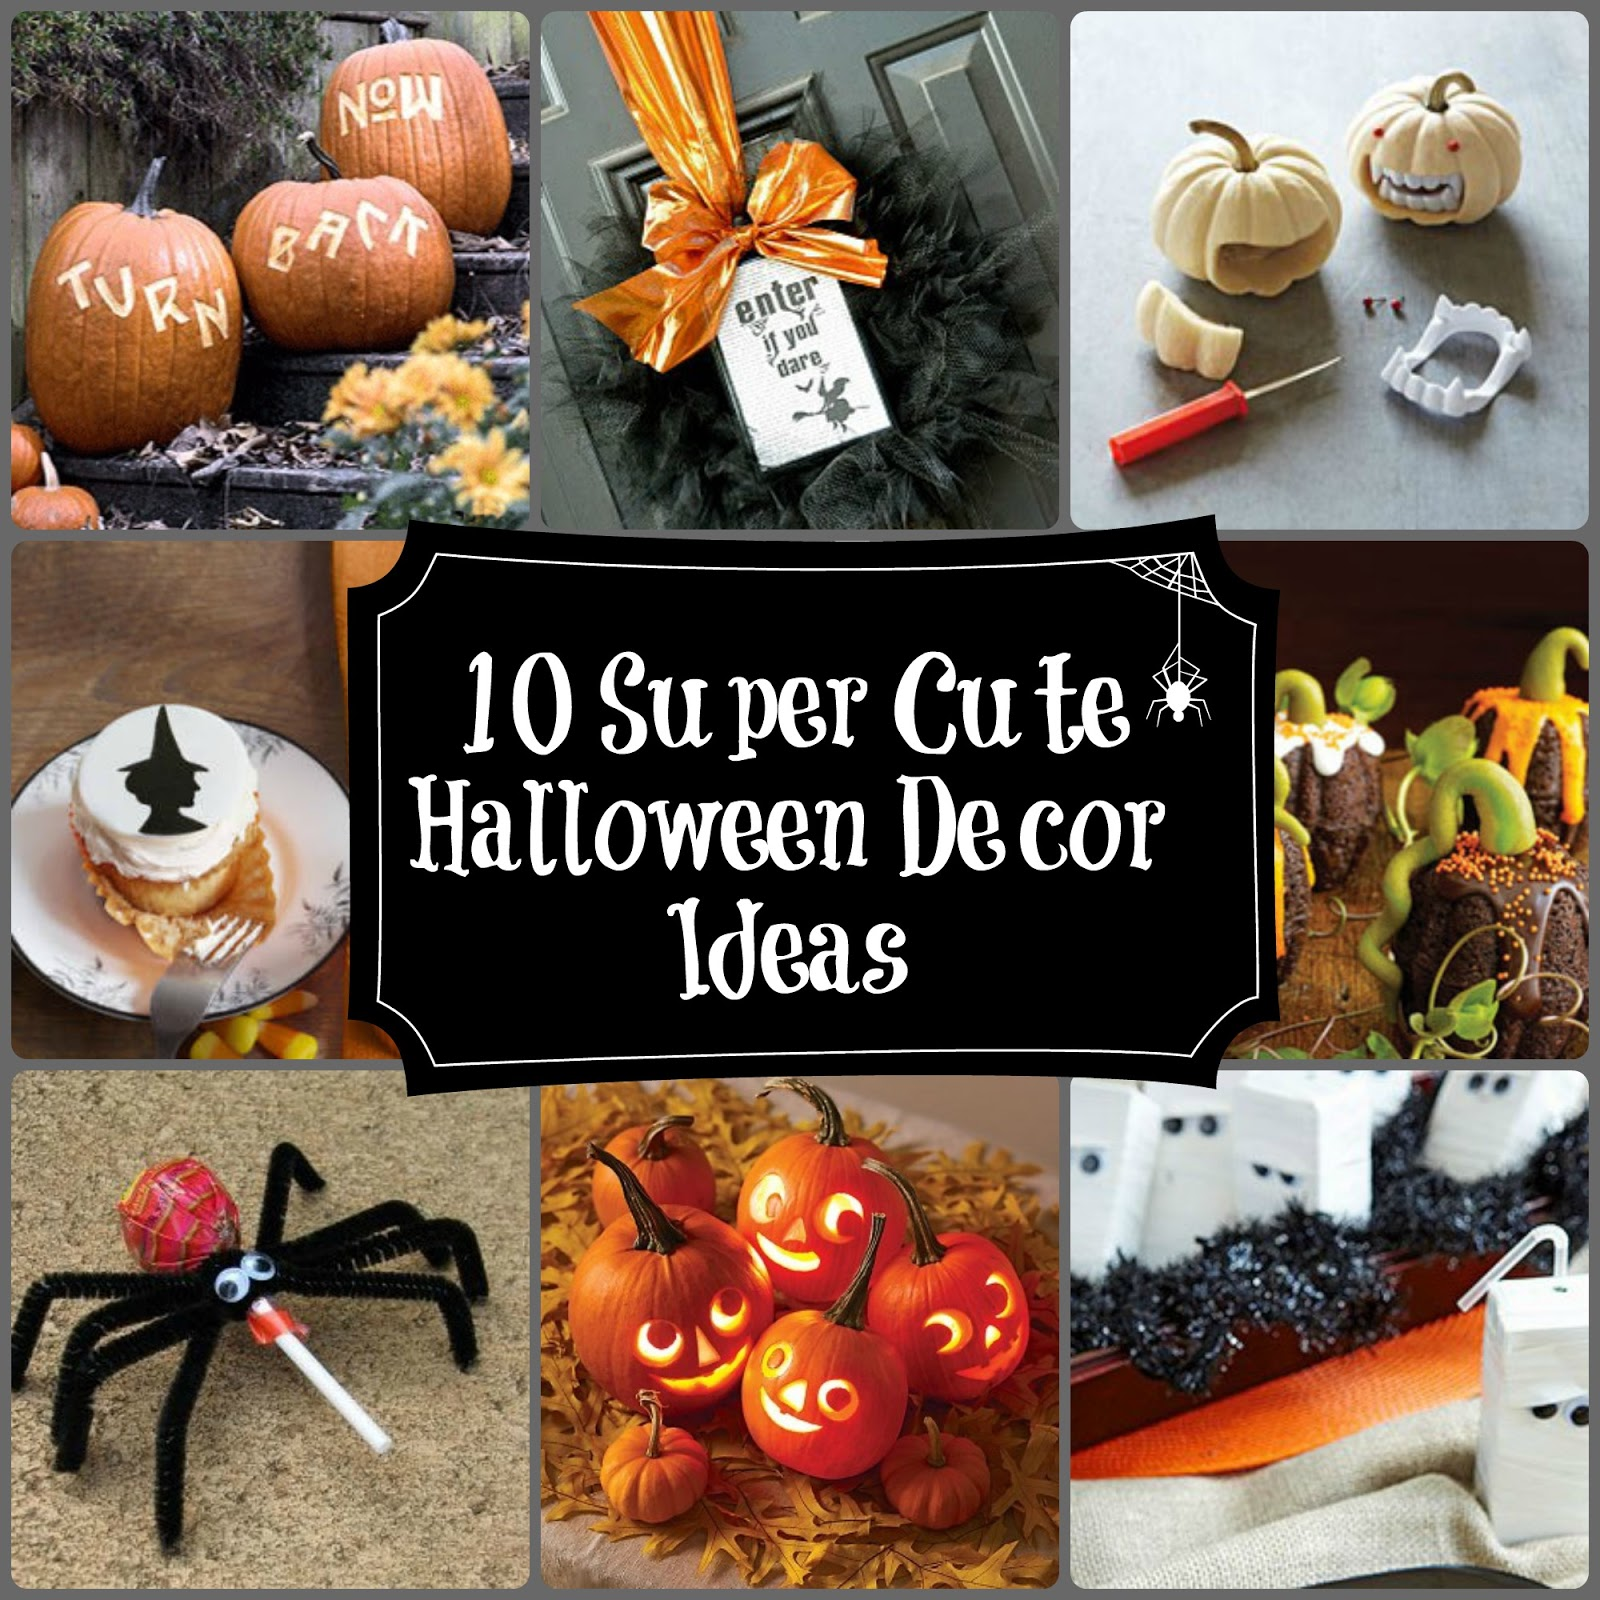 Cute Halloween Decorations For Kids  Viewing Gallery - Adorable Halloween Decorations